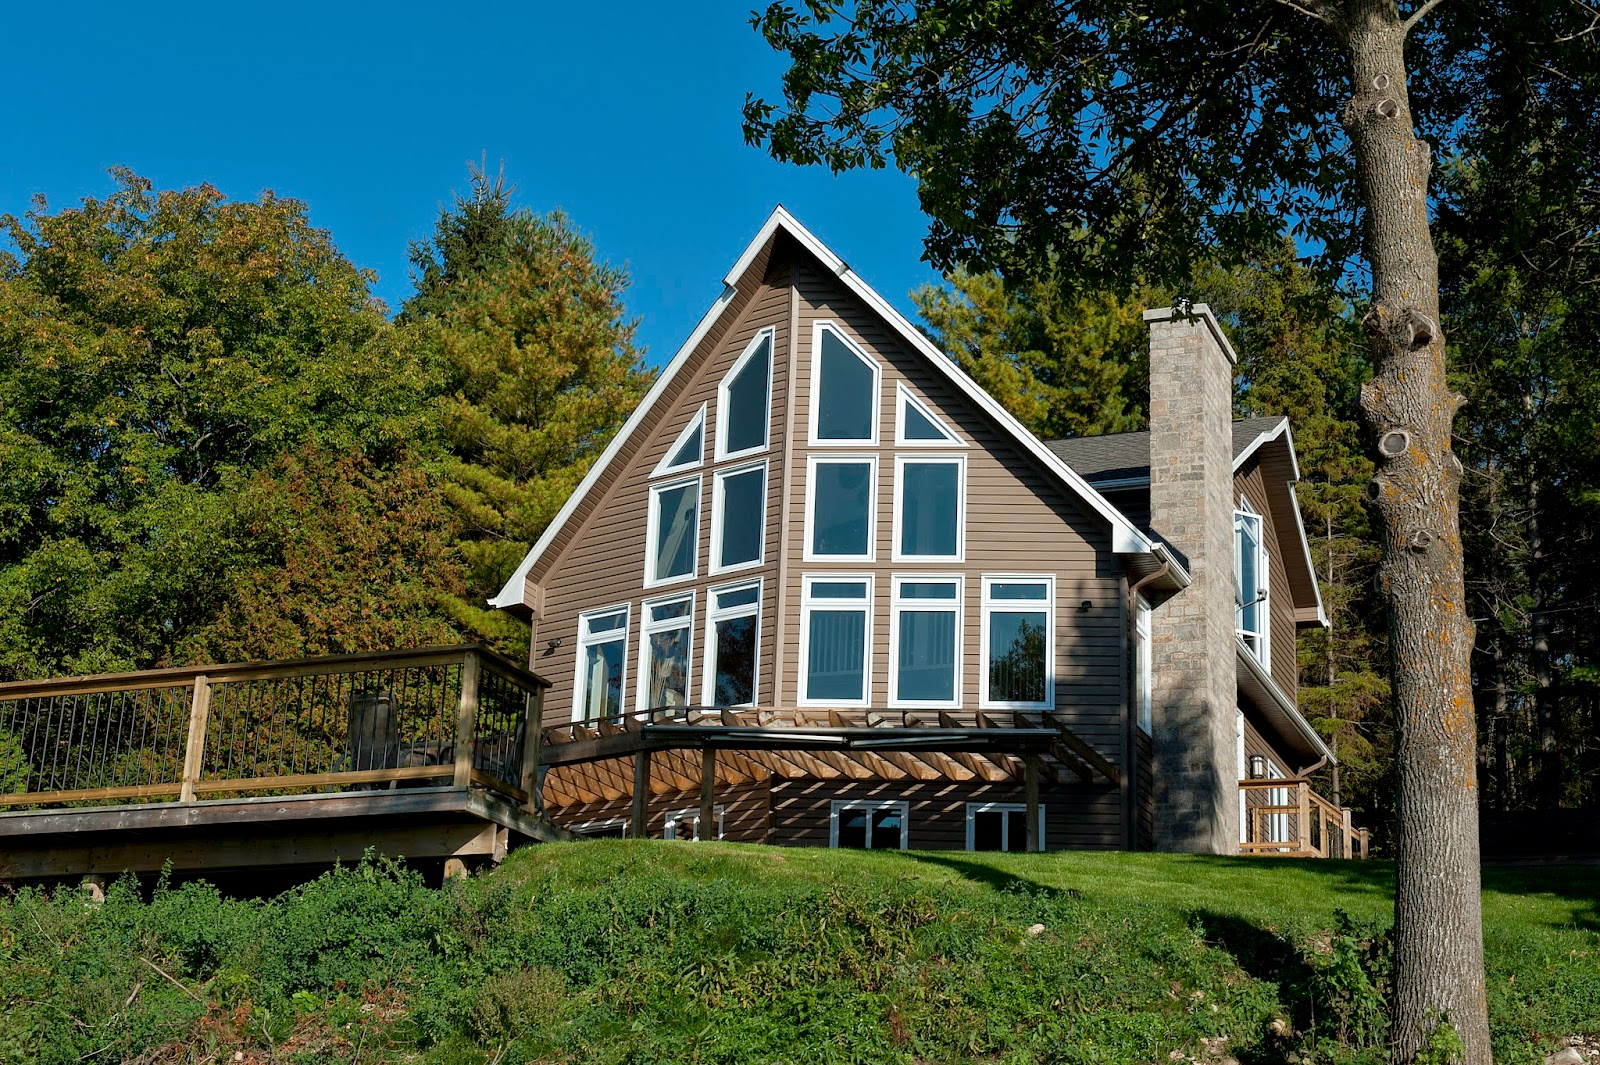 Beaver homes cottages it 39 s all about the view for Beaver home designs